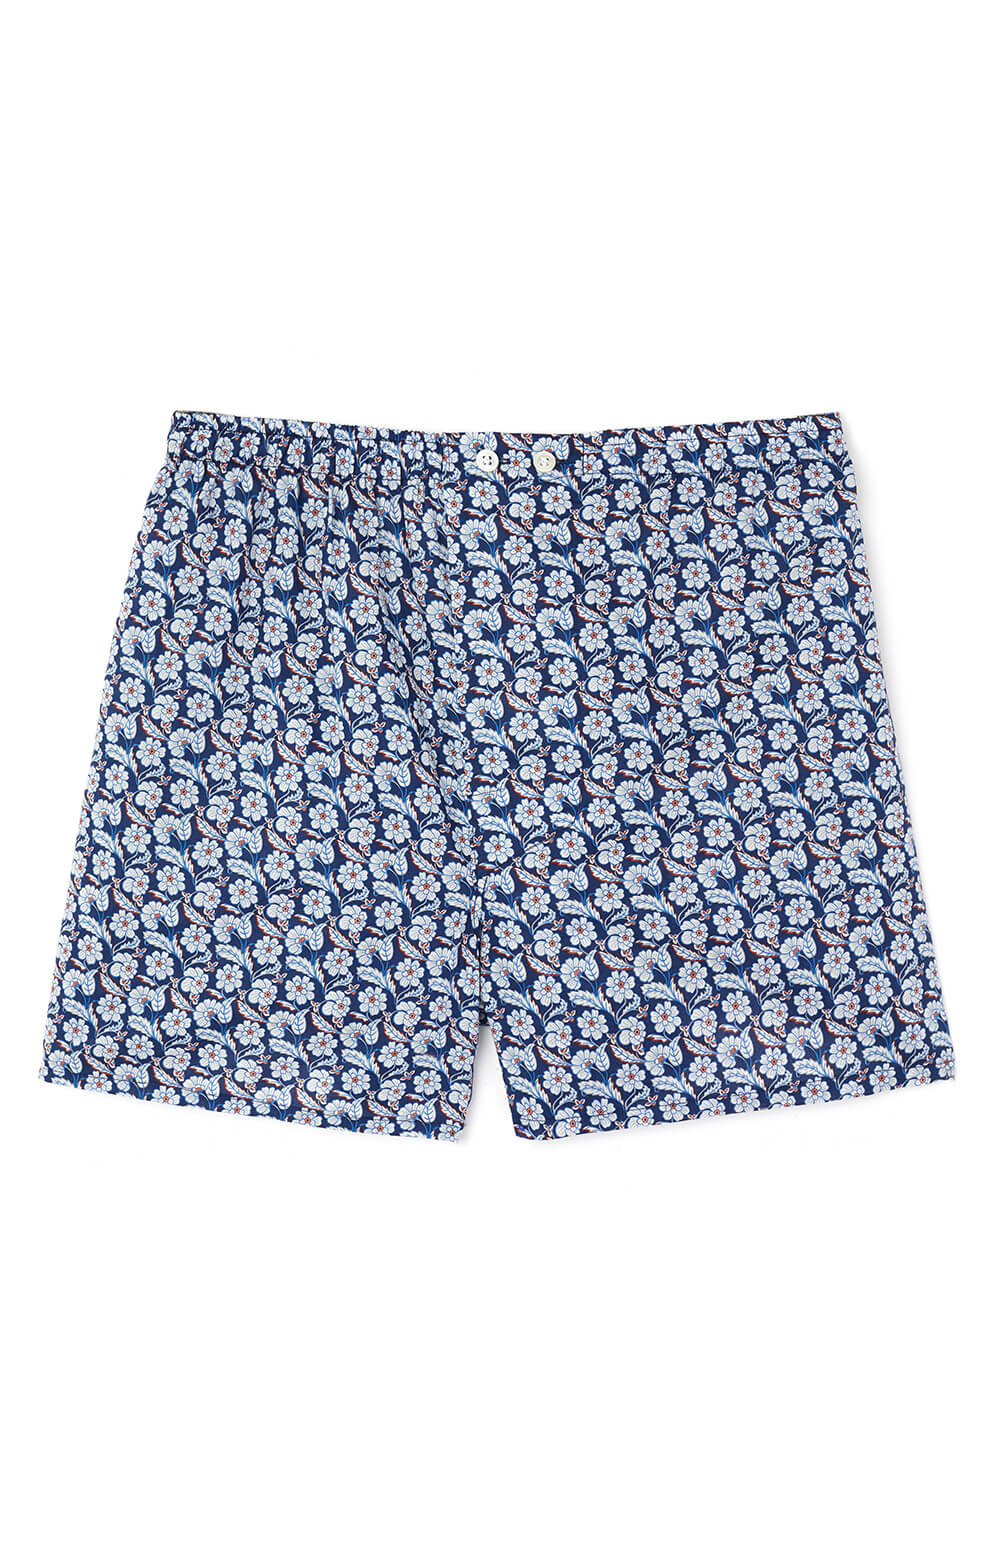 Fine Cotton Boxer Shorts made with Liberty Fabric (lmbb) - Chester